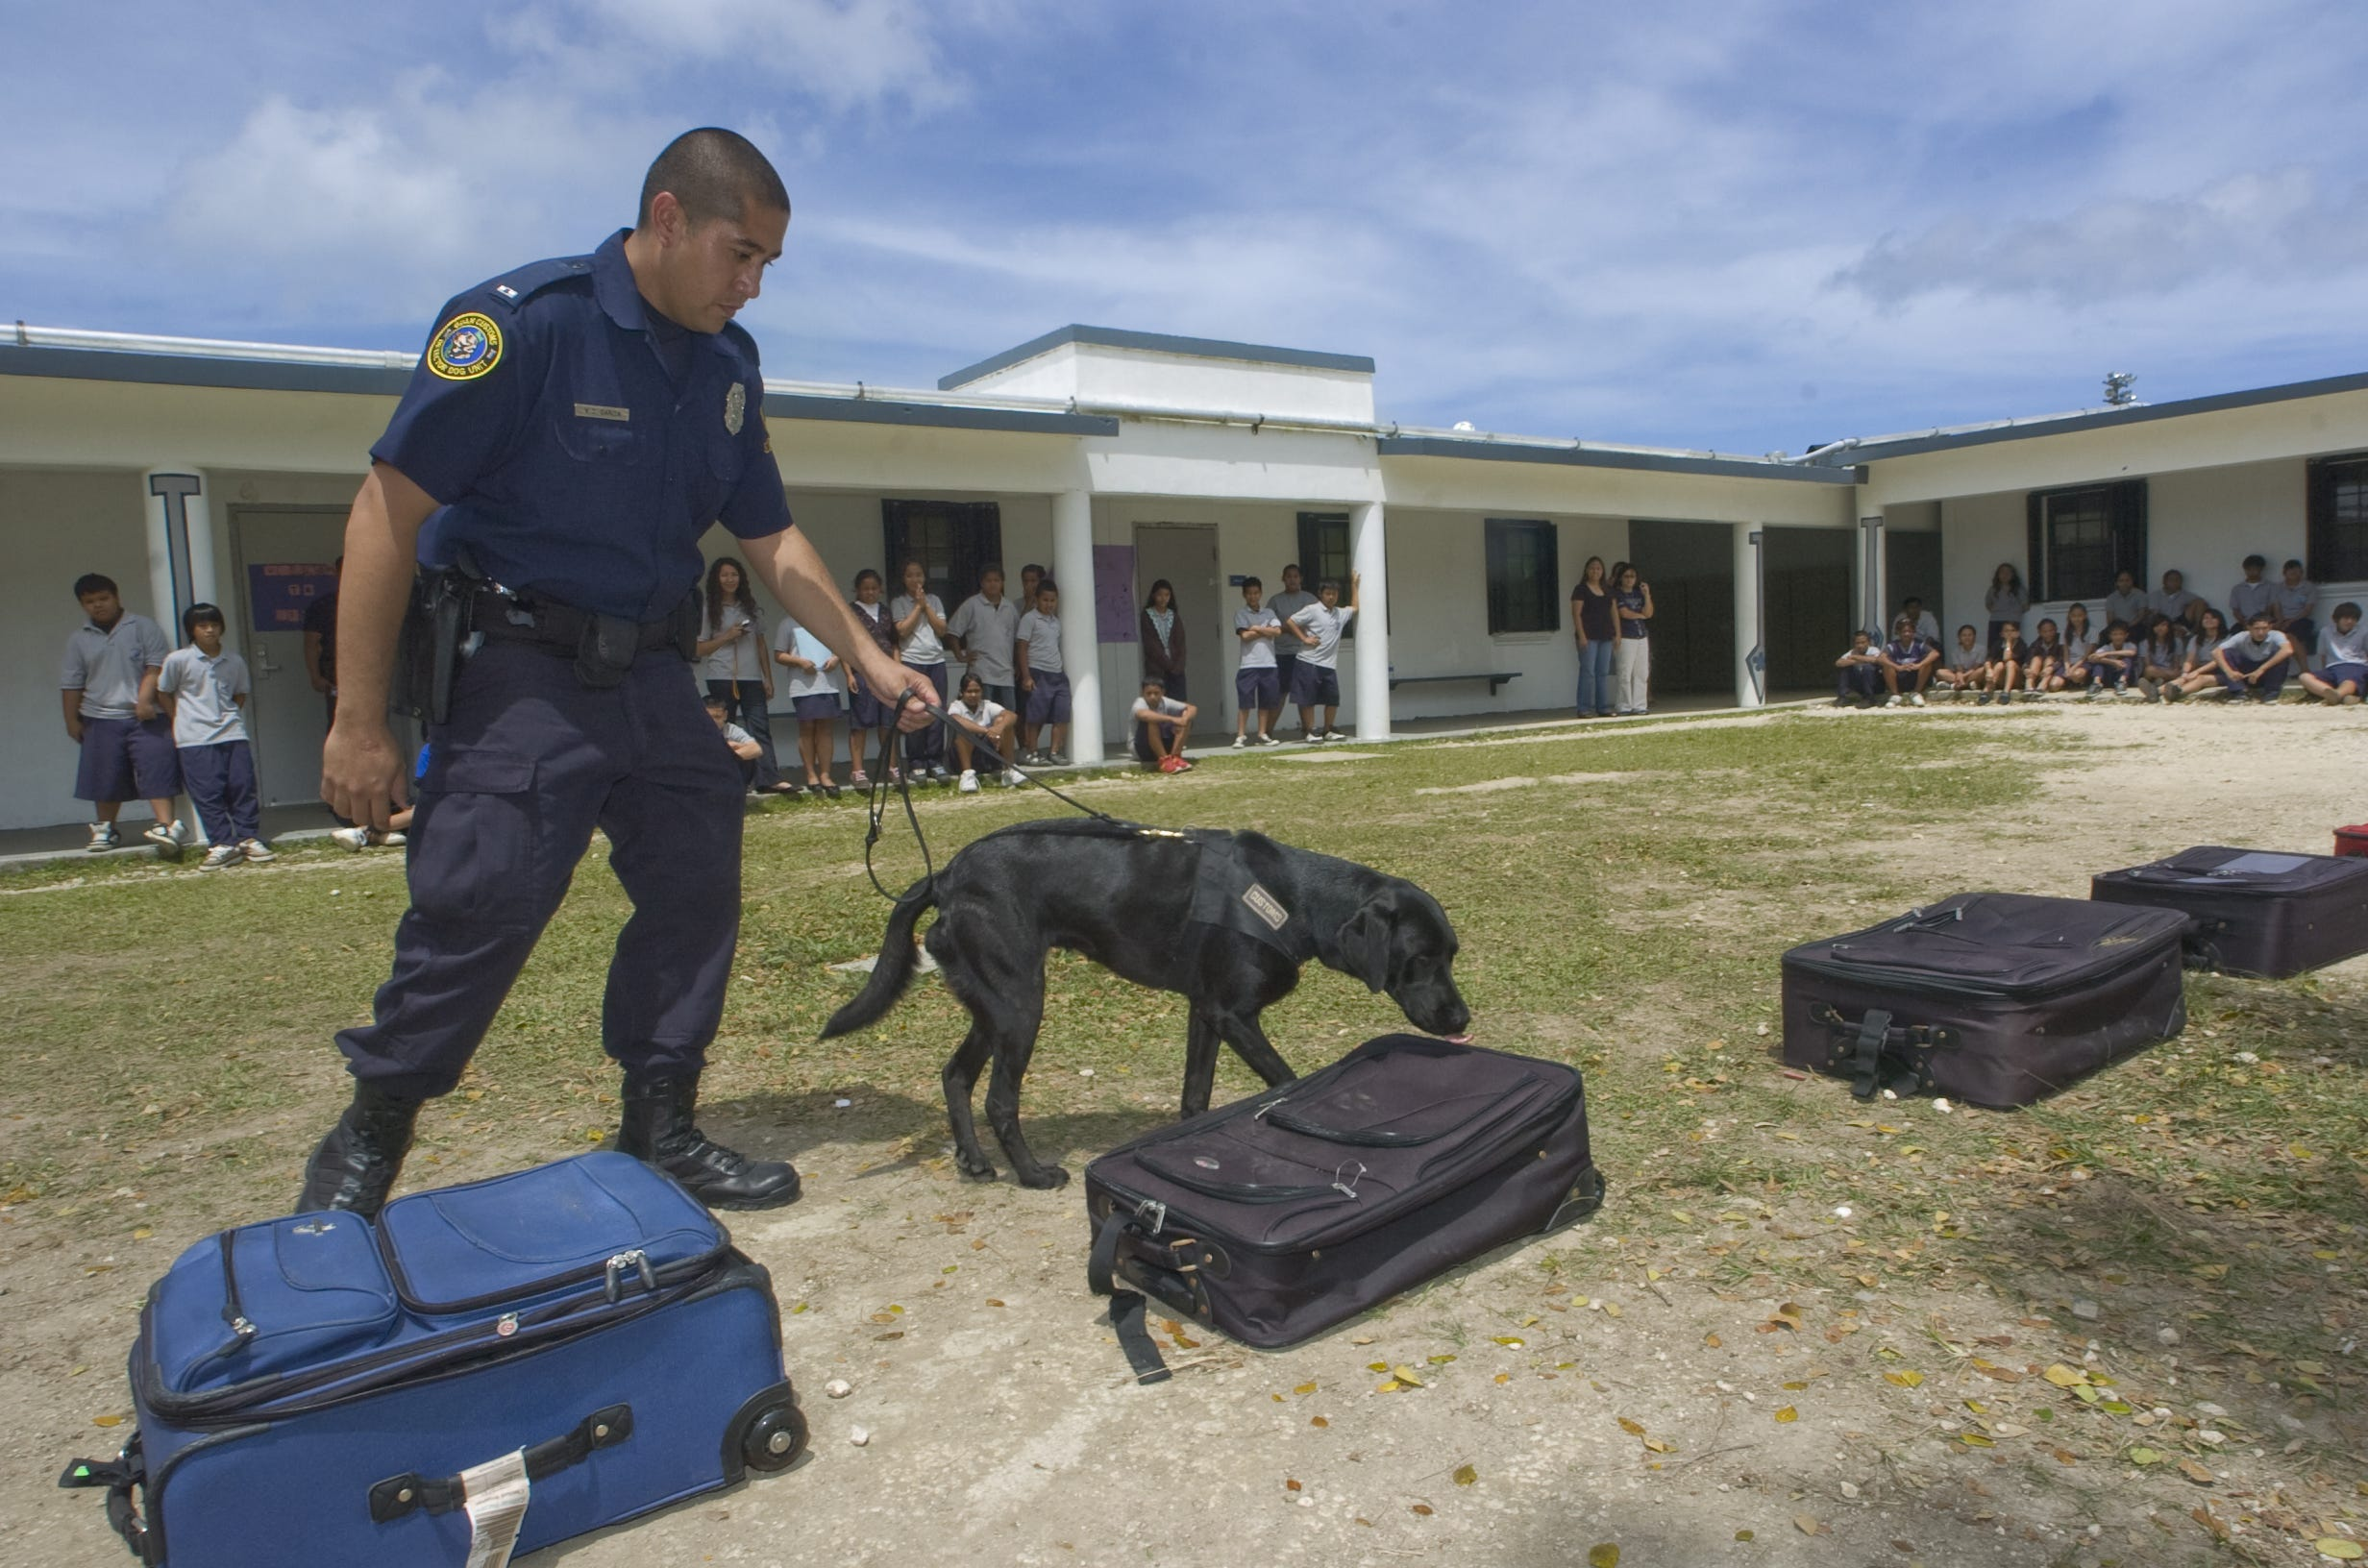 In this file photo, Guam Customs and Quarantine Officer Mark Garcia and drug detector dog Toya demonstrate how they detect drugs hidden in luggage at Jose Rios Middle School. Sen. Frank Aguon Jr. said he introduced a bill to reinstate hazard pay for customs employees.